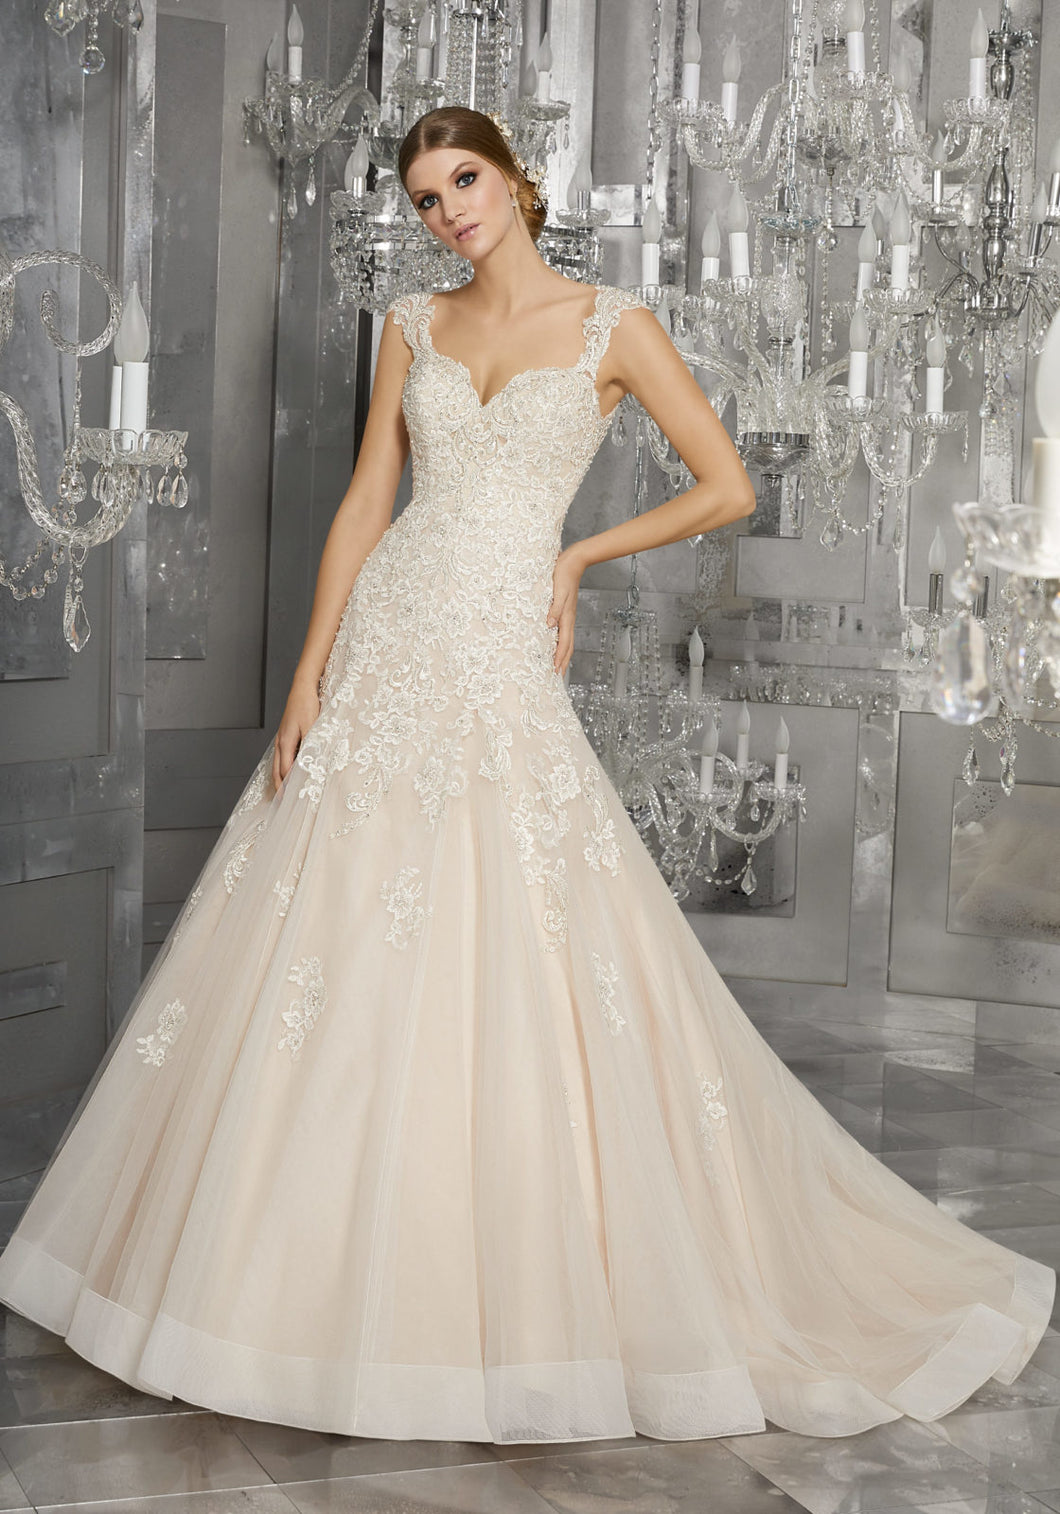 #C8146 - Concepcion Bridal & Quinceañera Boutique